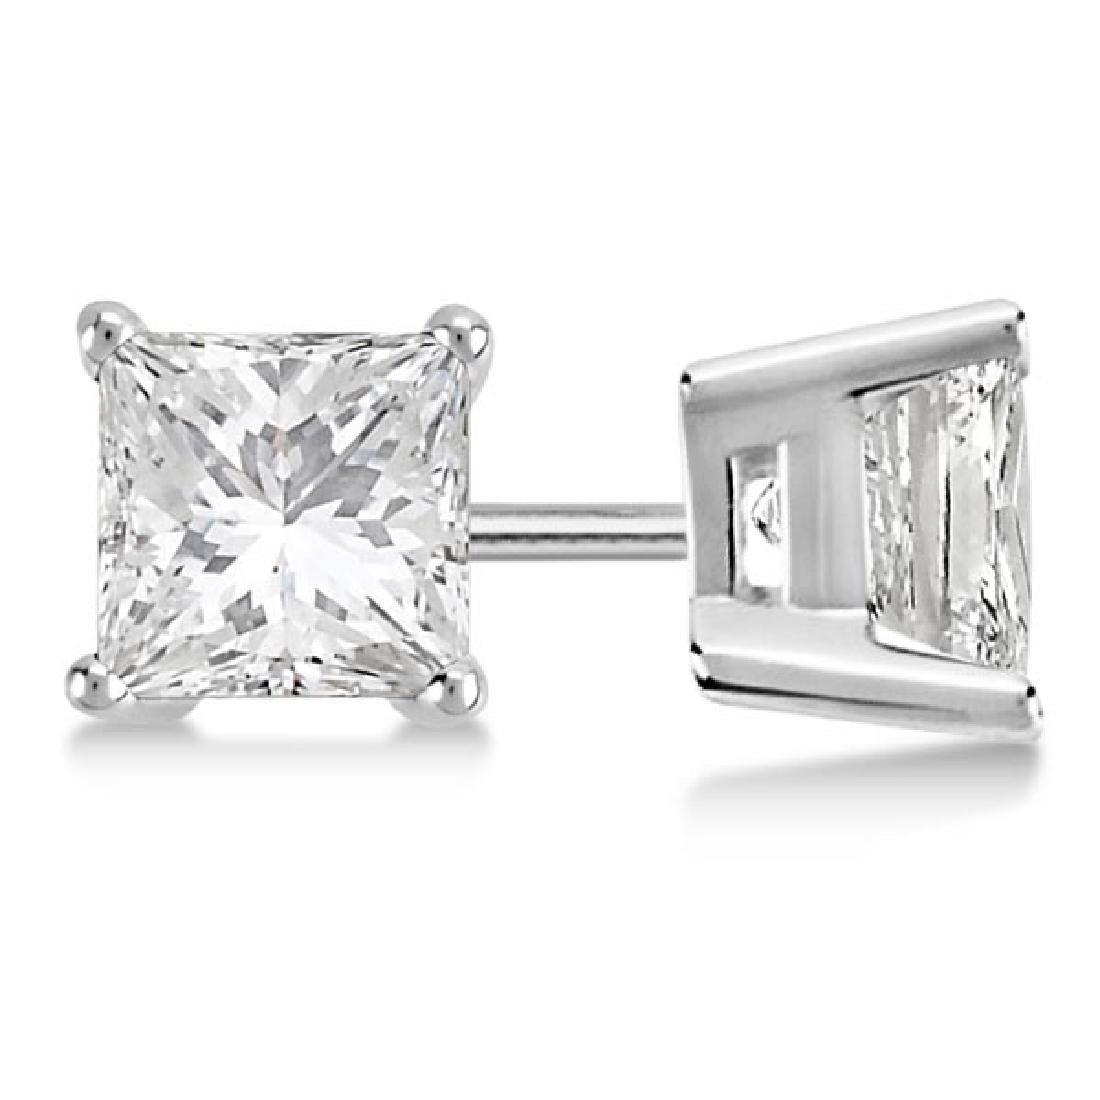 Certified 1 CTW Princess Diamond Stud Earrings D/I1